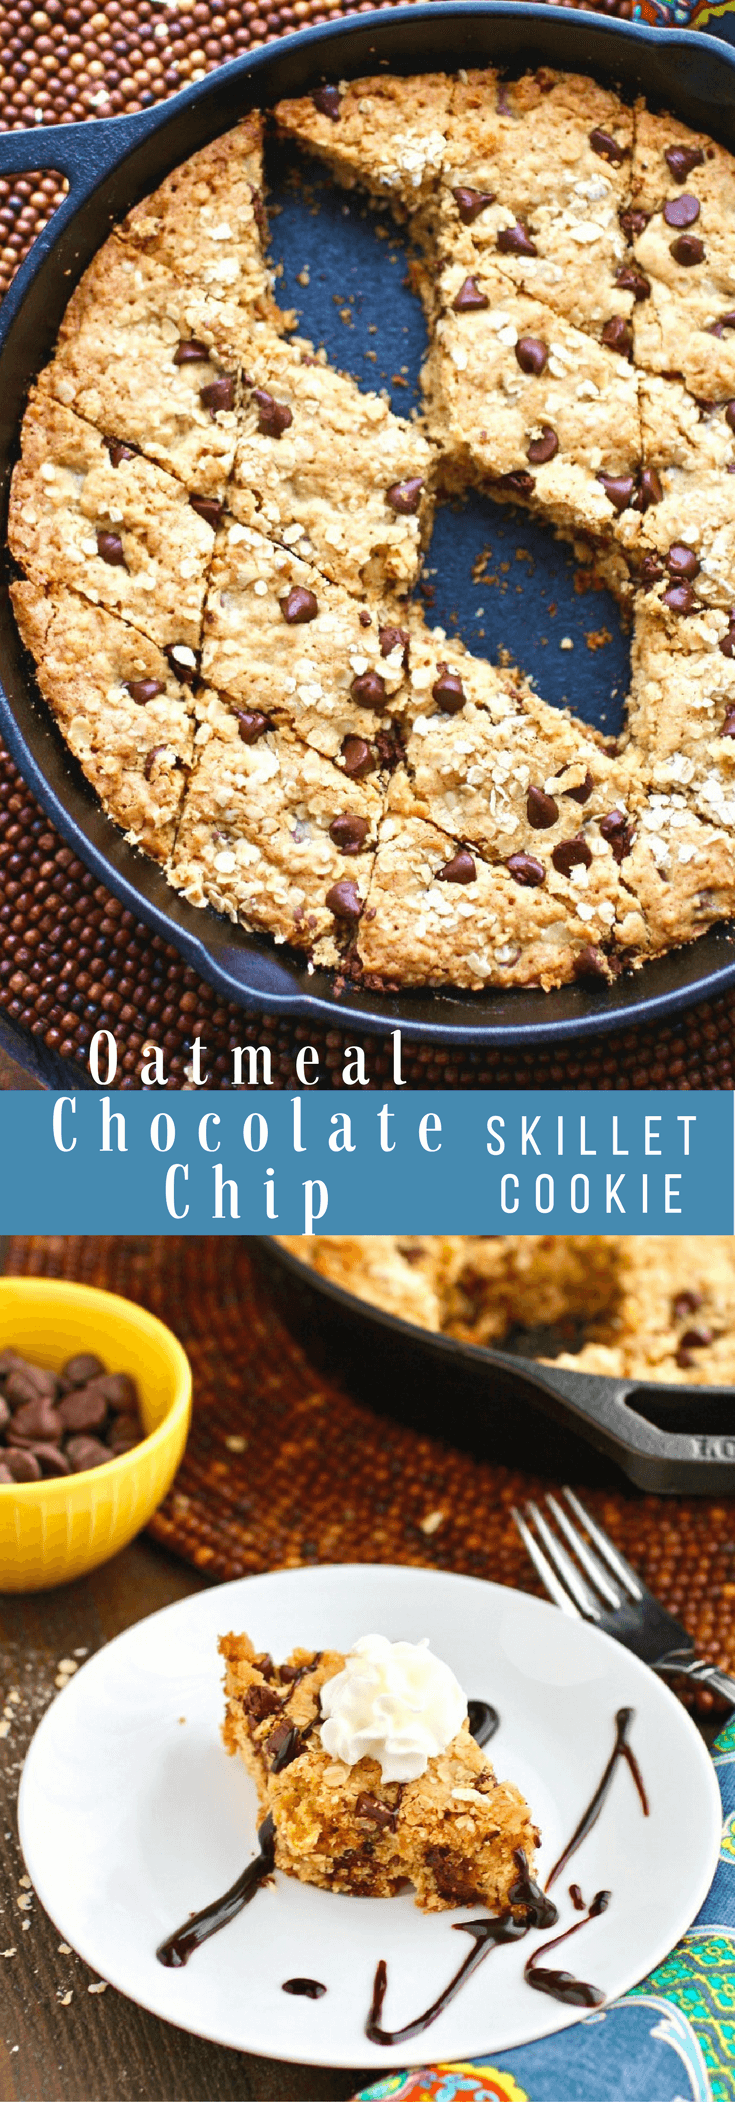 Get ready for a fun dessert! This Oatmeal-Chocolate Chip Skillet Cookie recipe is easy to make and fun to enjoy!